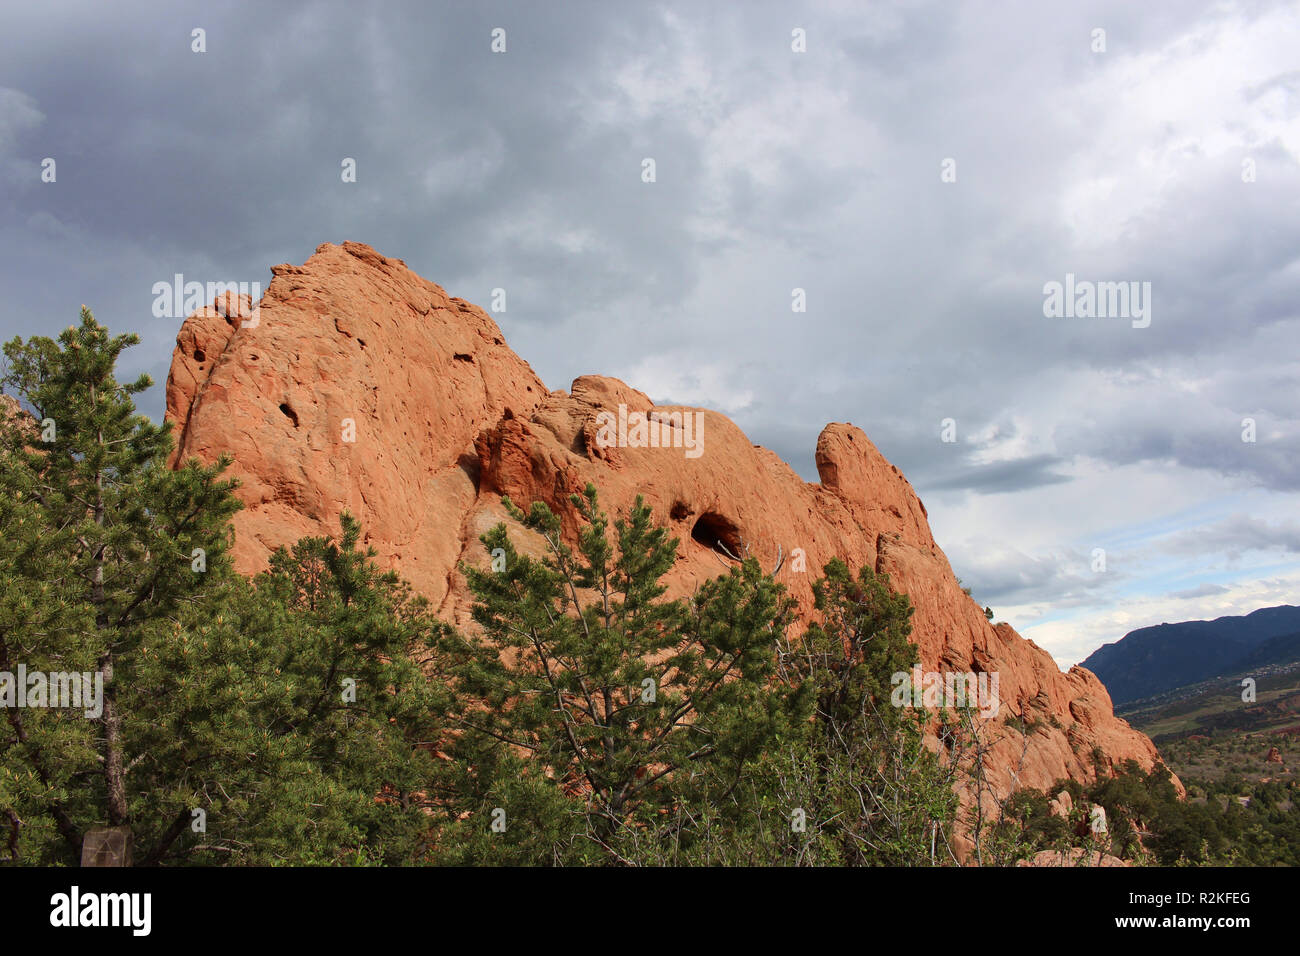 Large rock formation, made of red rock, and pine trees under stormy skies at the Garden of the Gods in Colorado Springs, Colorado, USA - Stock Image